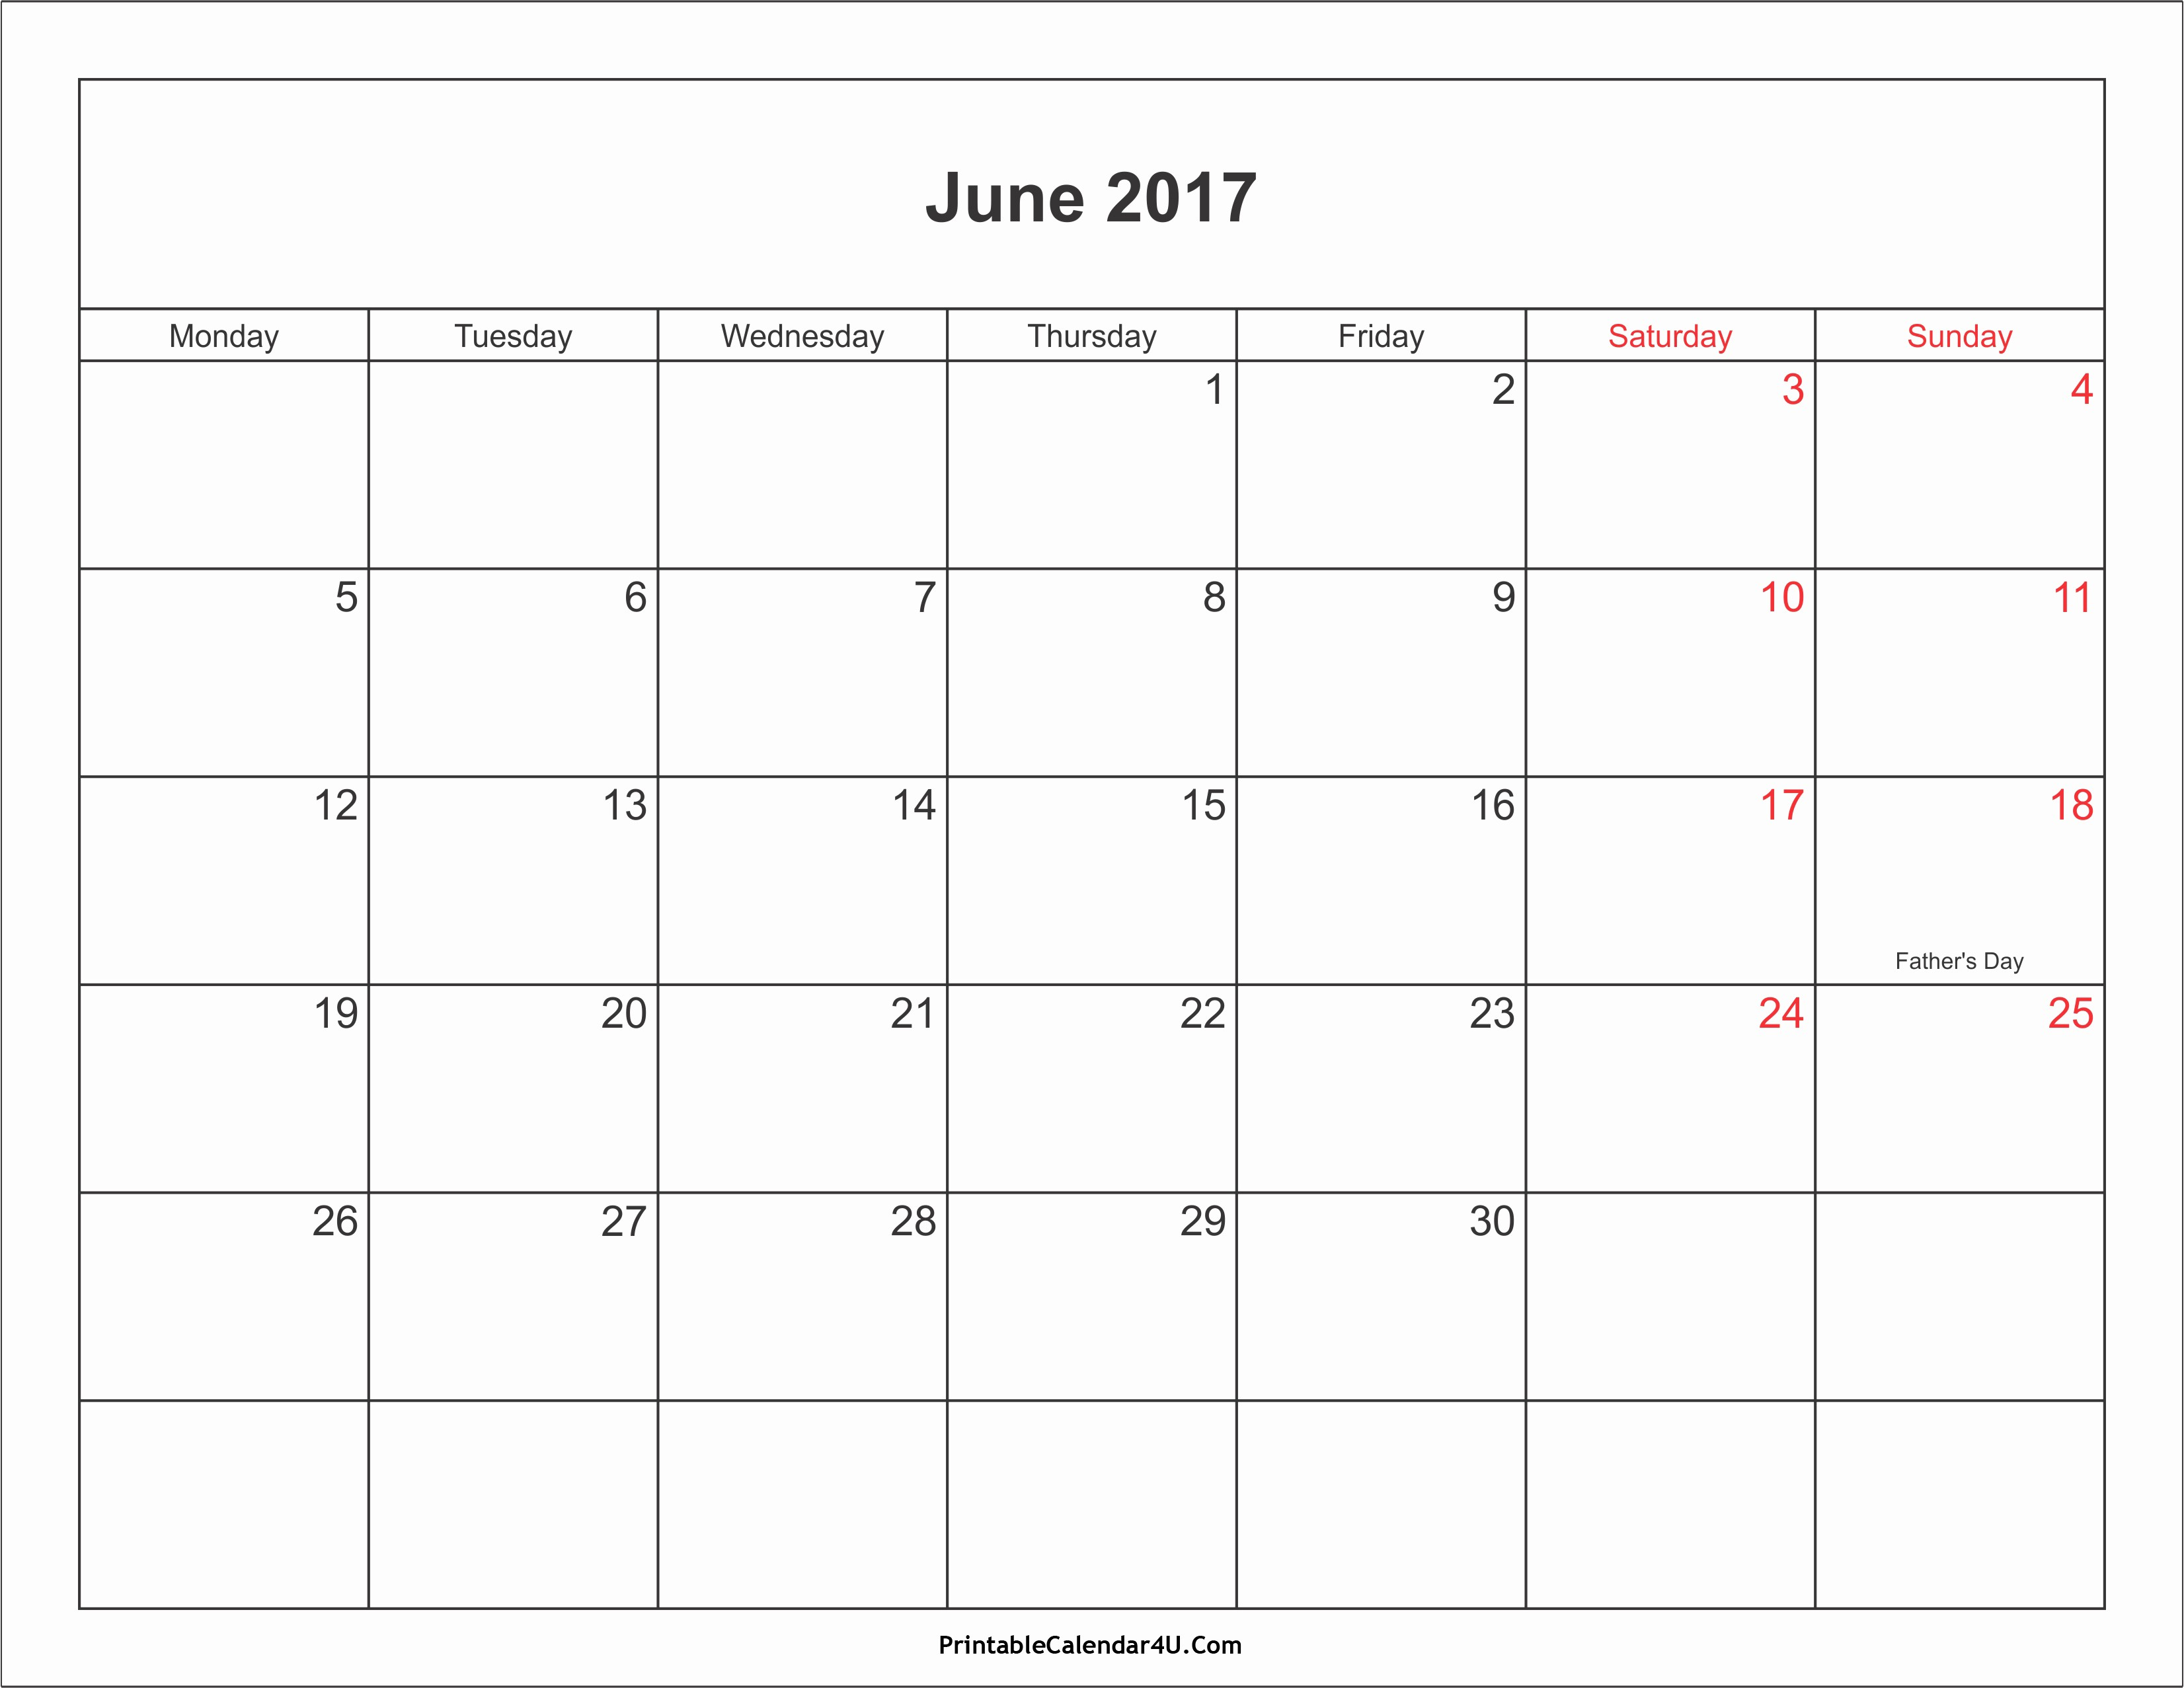 Free Blank Printable Calendar 2017 Elegant June 2017 Calendar Printable with Holidays Pdf and Jpg